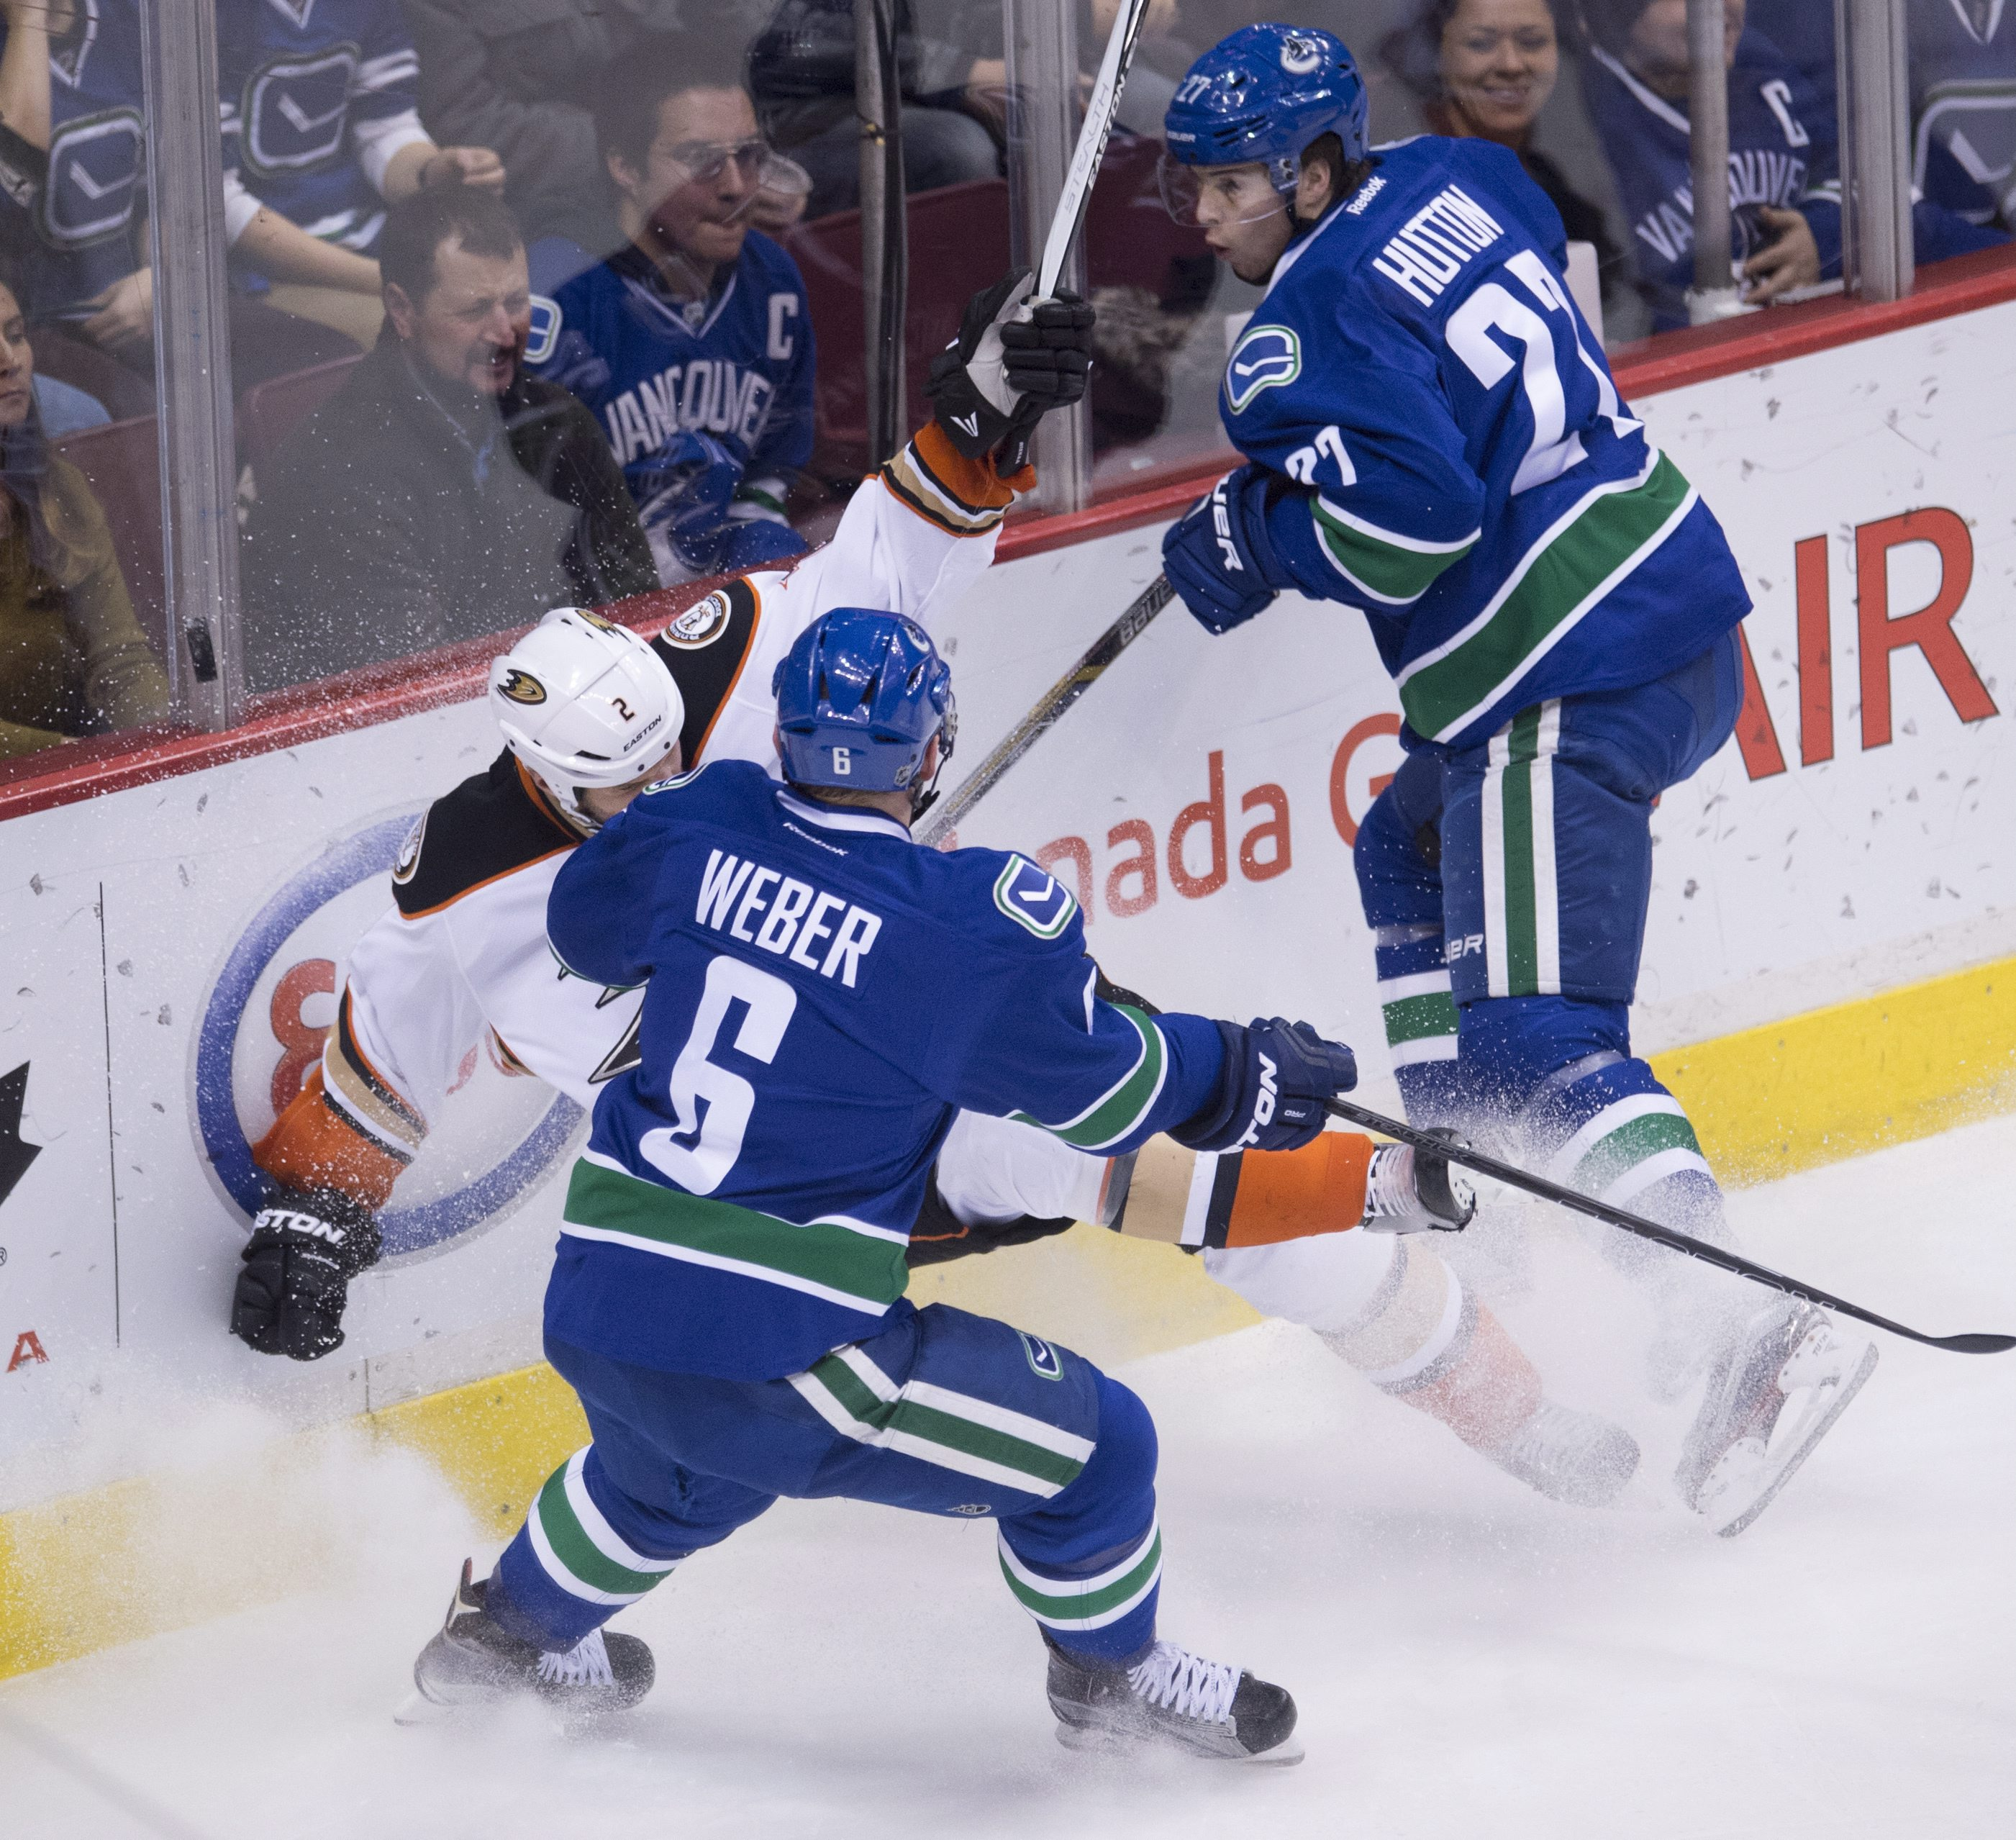 Vancouver Canucks defenseman Yannick Weber (6) and defenseman Ben Hutton (27) go into the boards with Anaheim Ducks defenseman Kevin Bieksa (2) during the second period of an NHL hockey game in Vancouver, British Columbia, Friday, Jan. 1, 2016.  (Jonathan